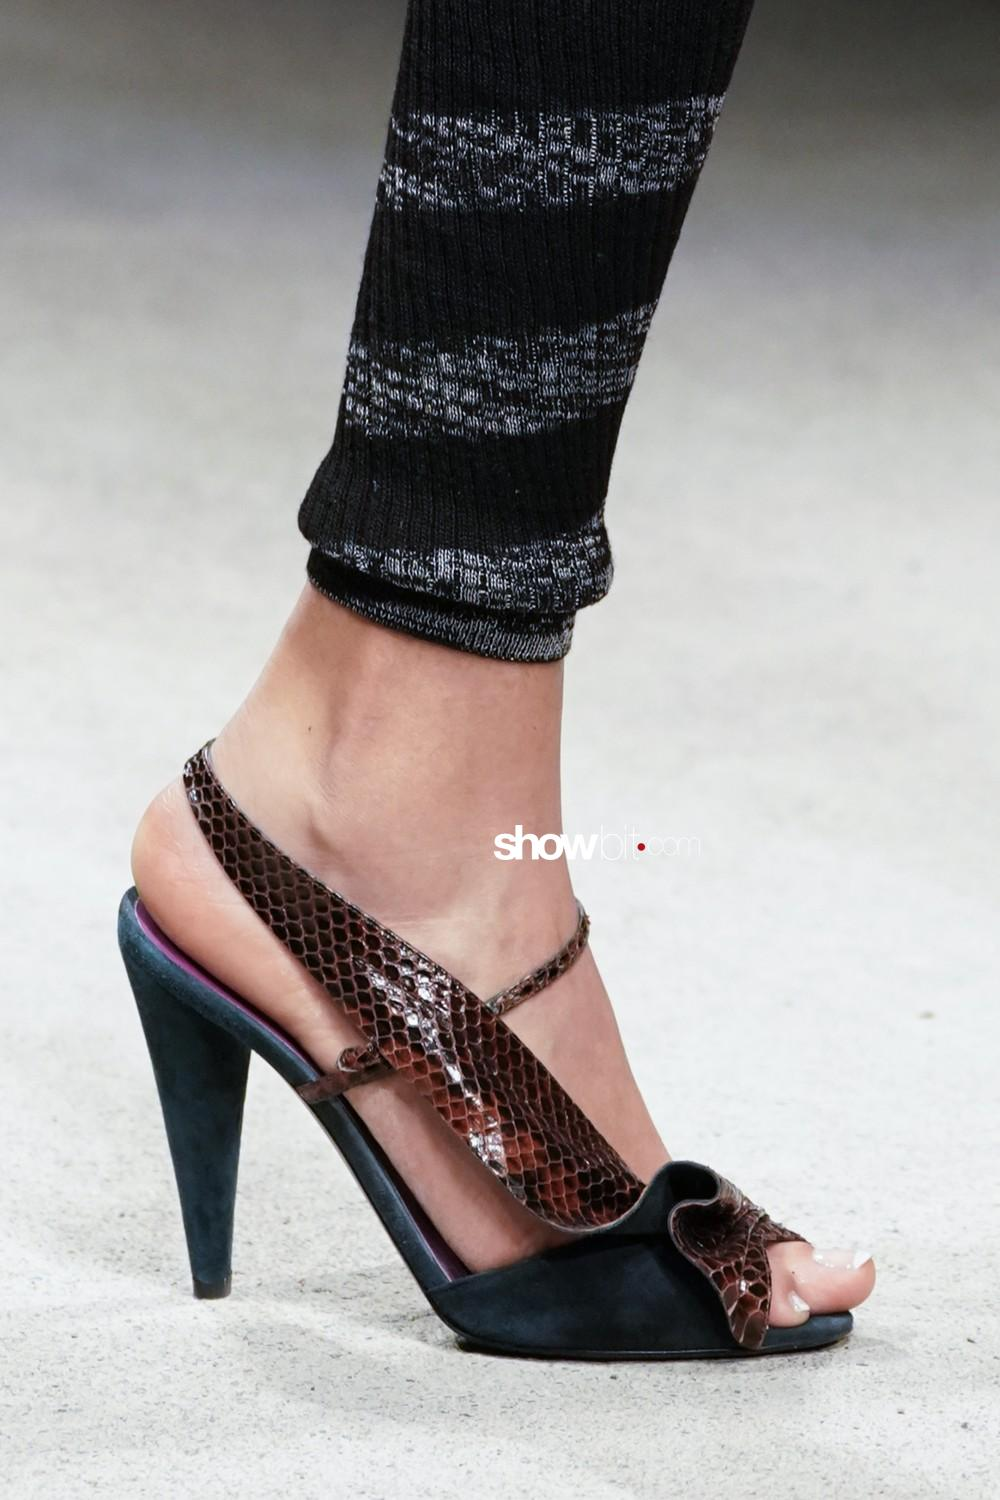 Missoni close-up Women Fall Winter 2020 Milano shoes